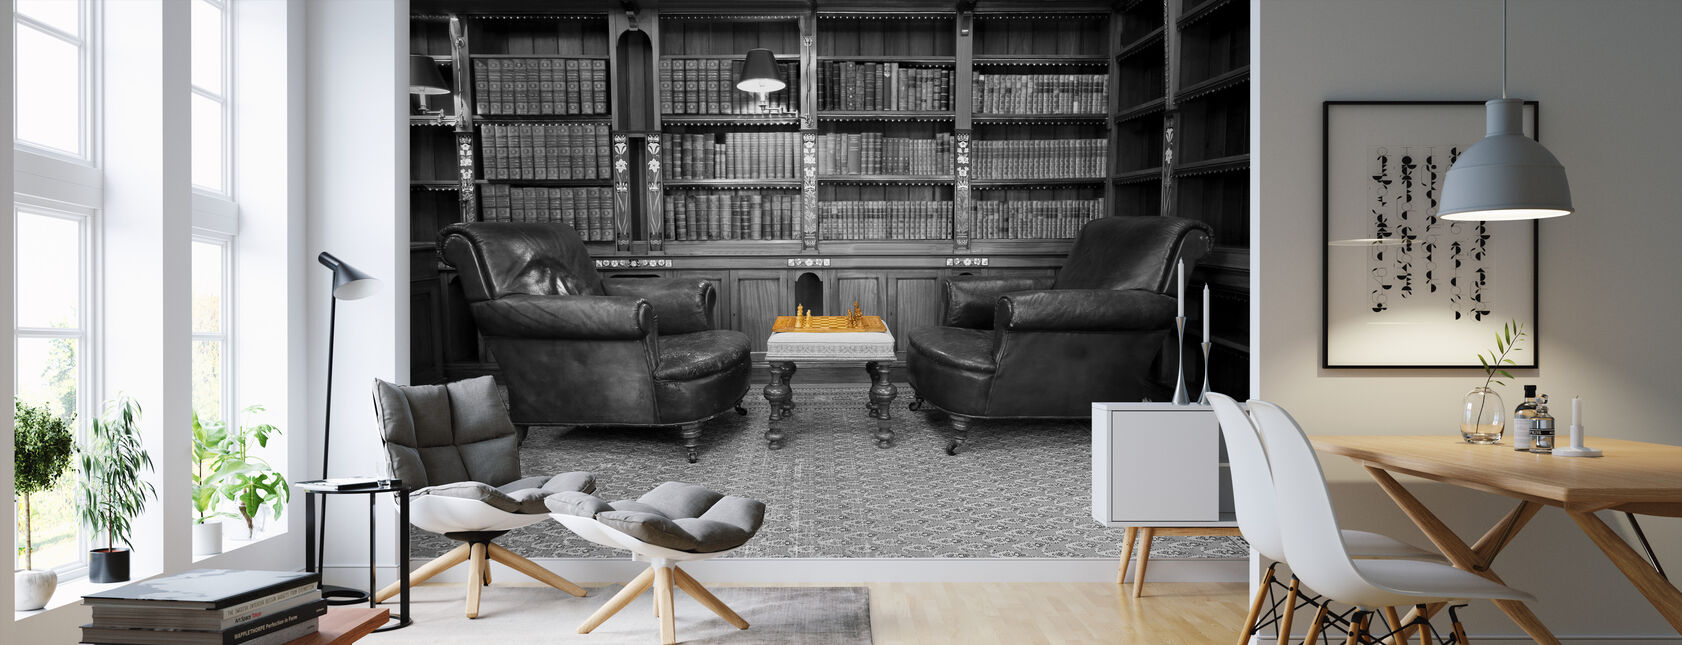 Old Library - Wallpaper - Living Room